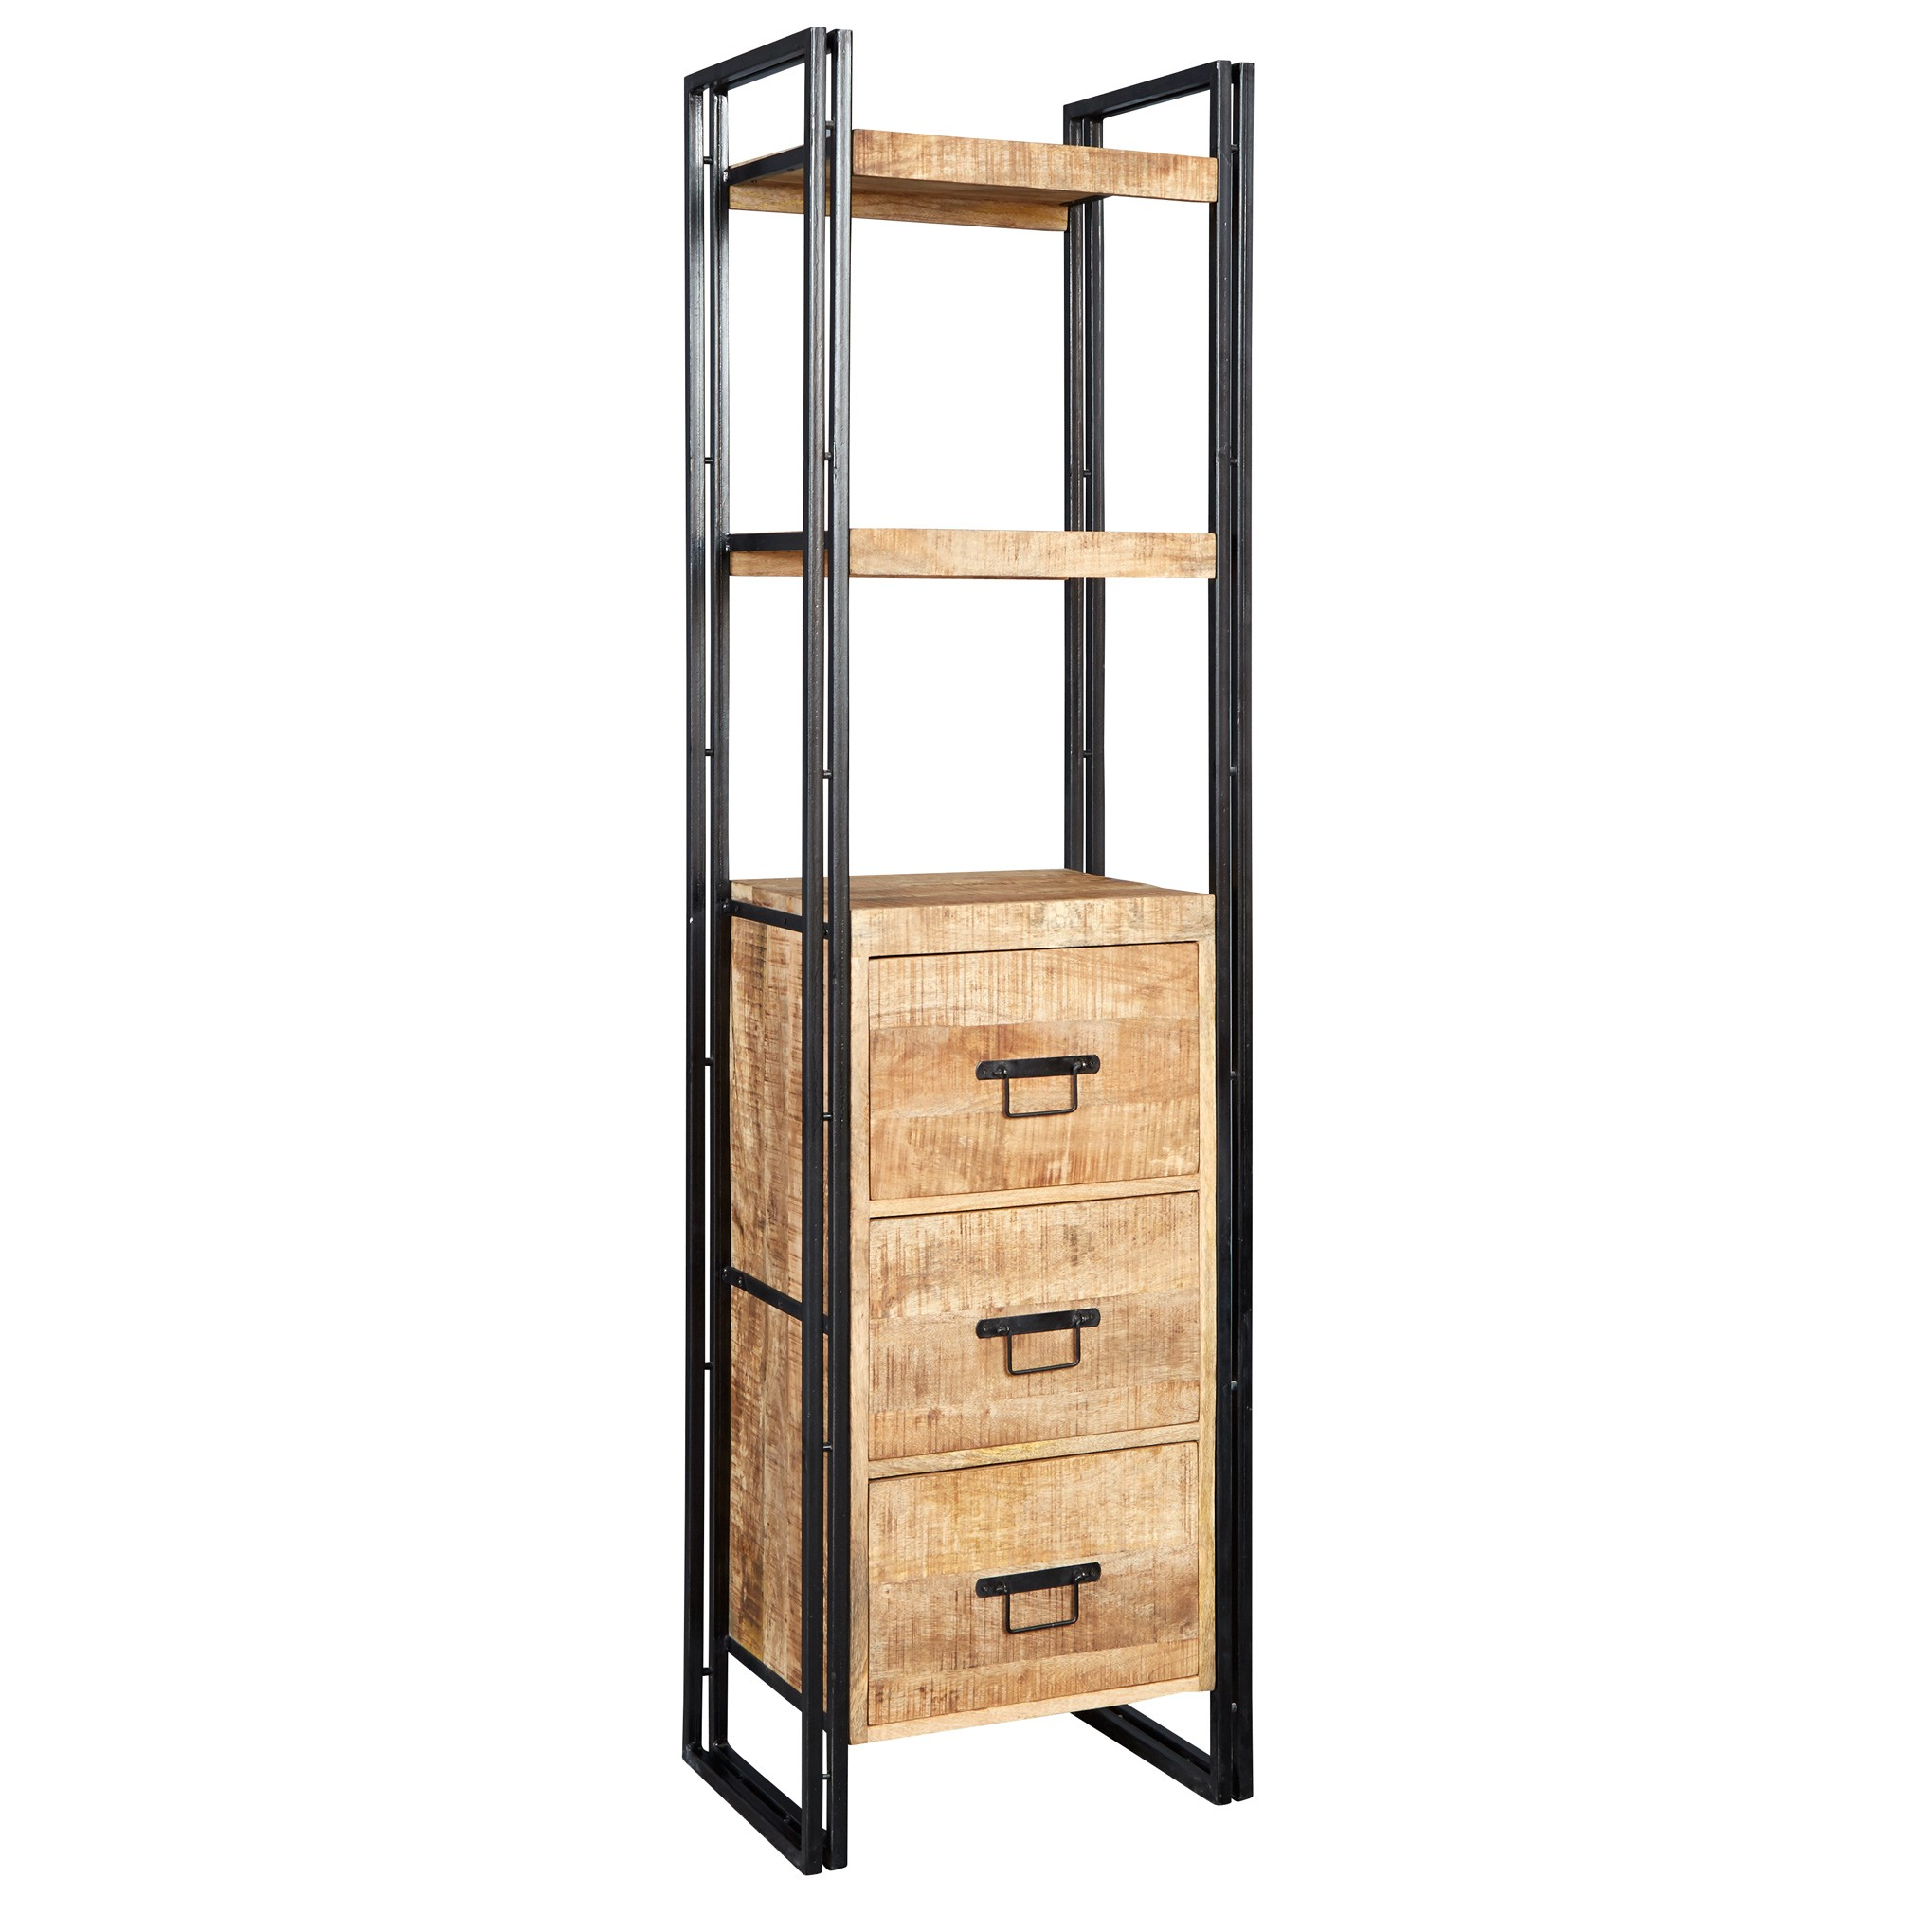 Cosmo Industrial Slim Bookcase : id161 from www.indianhub.co.uk size 2039 x 2039 jpeg 332kB